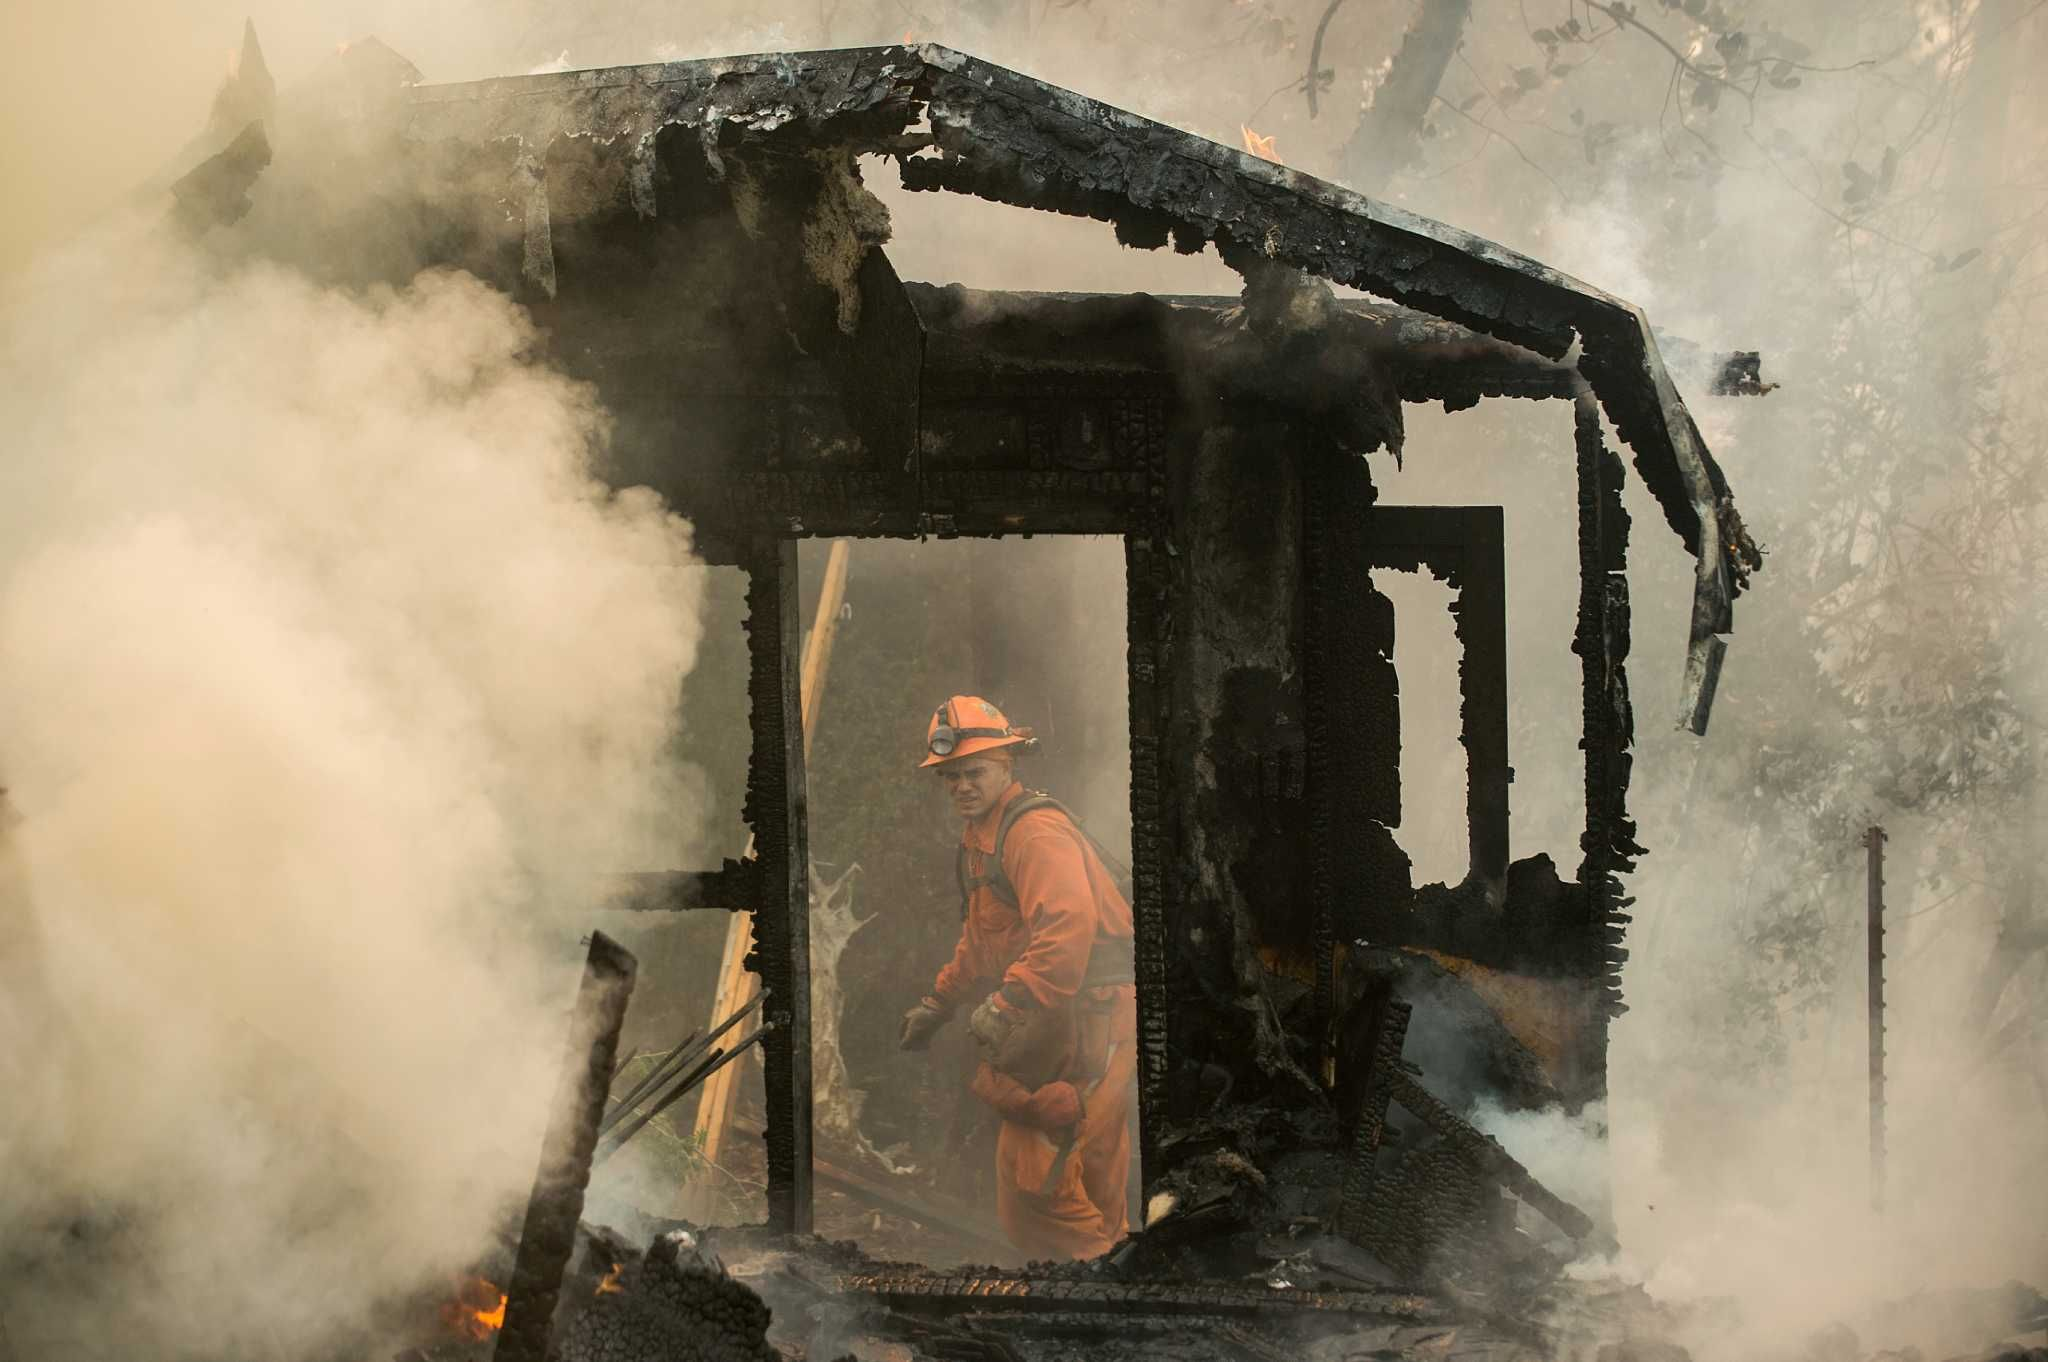 (AP) — Some evacuations were lifted as cooler weather gave